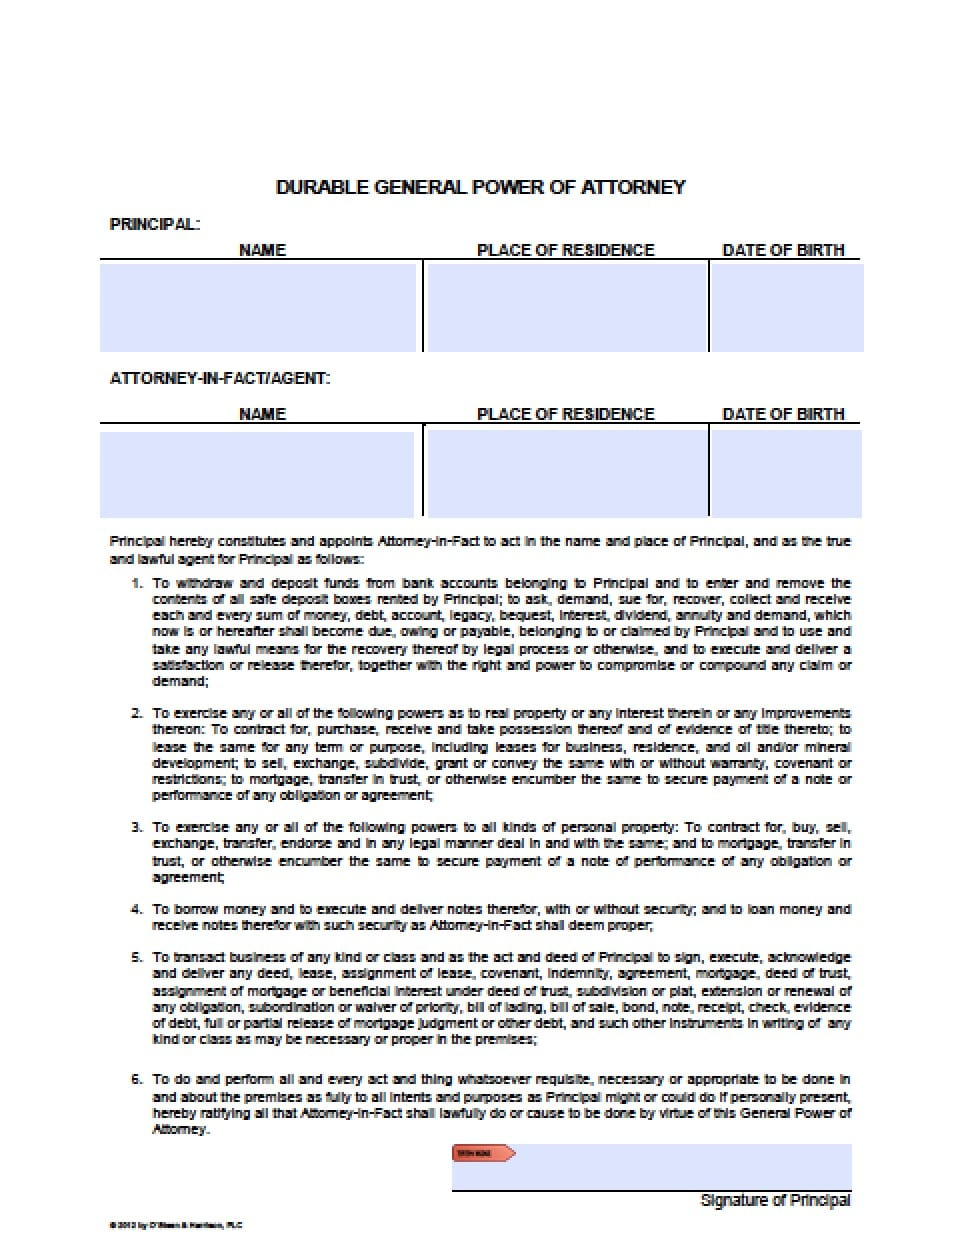 Free Arizona Power of Attorney Forms in Fillable PDF – General Power of Attorney Form